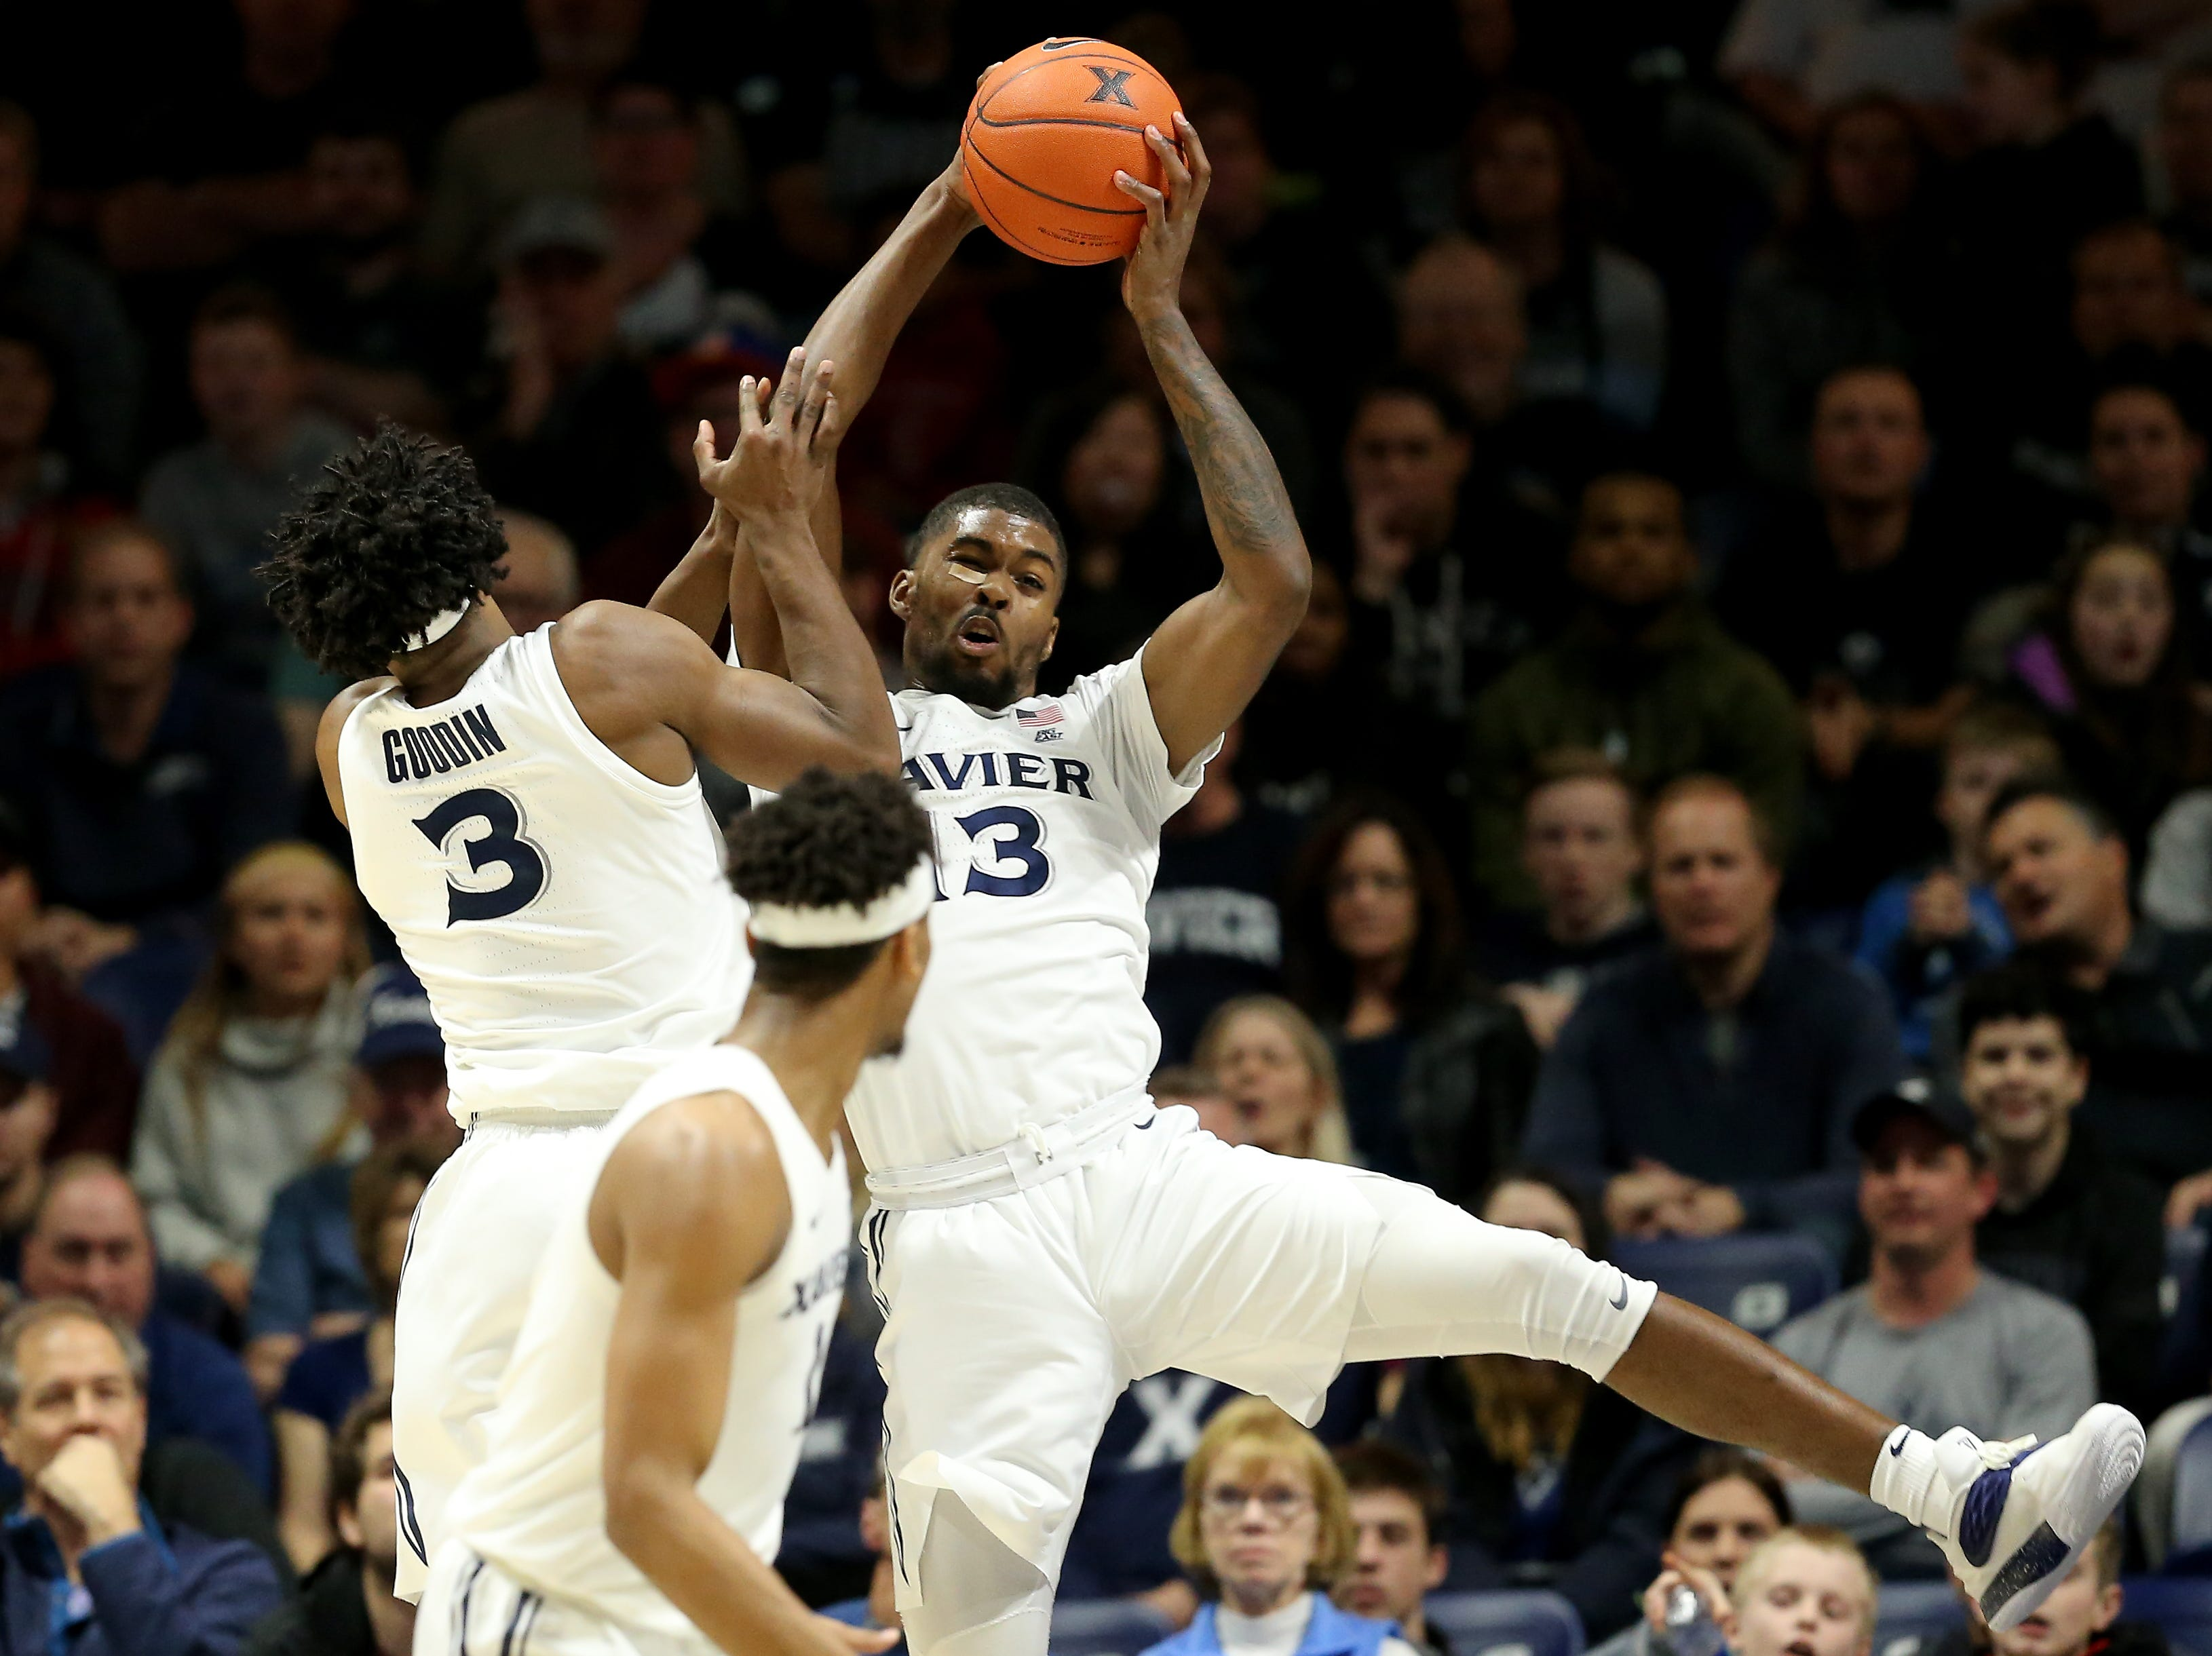 Xavier Musketeers forward Naji Marshall (13) pulls down a rebound in the first half of an NCAA college basketball game against the Seton Hall Pirates, Wednesday, Jan. 2, 2019, at the Cintas Center in Cincinnati.